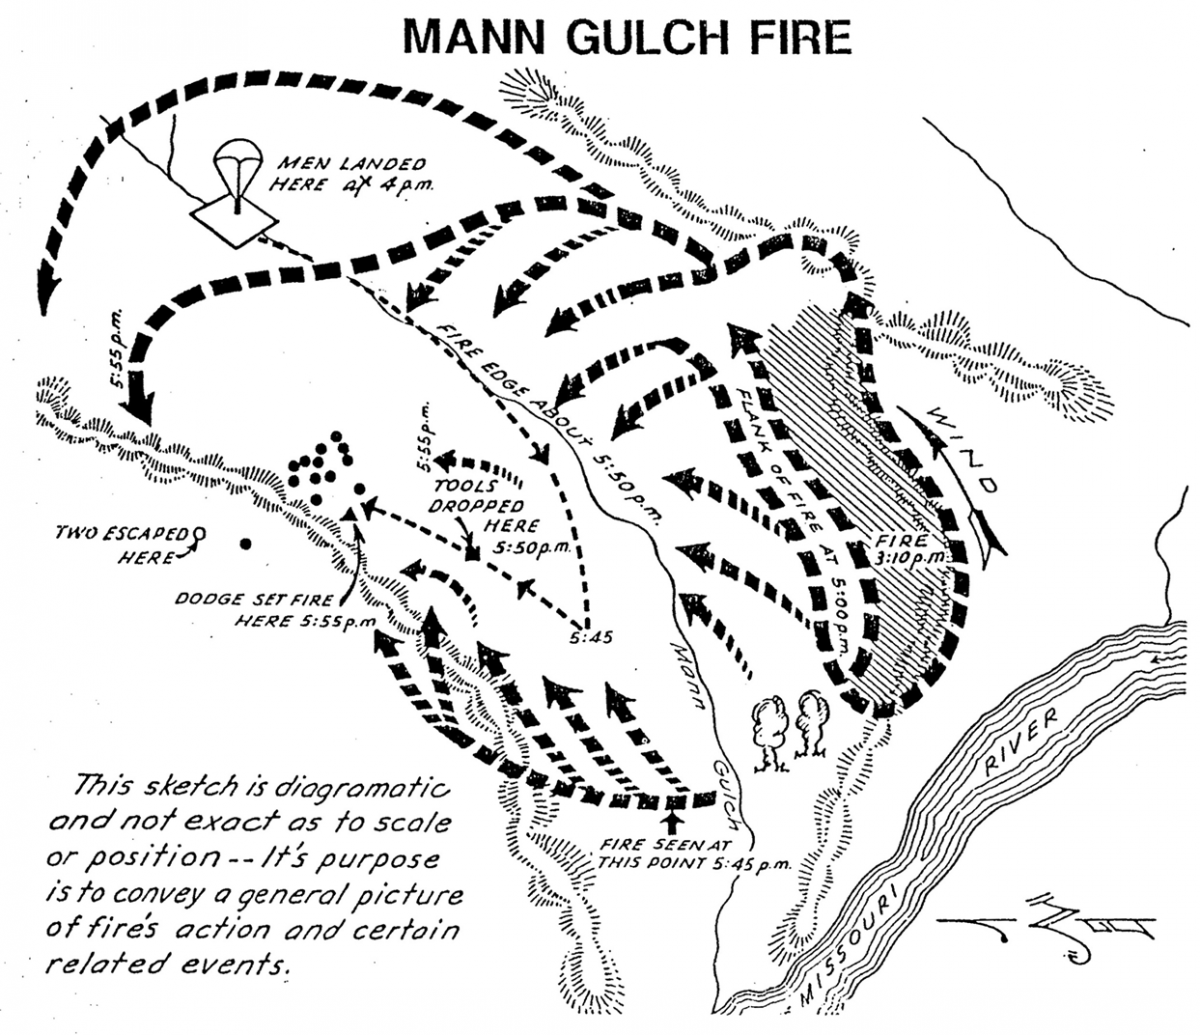 image map of the routes and location of firefighters on the Mann Gulch fire.